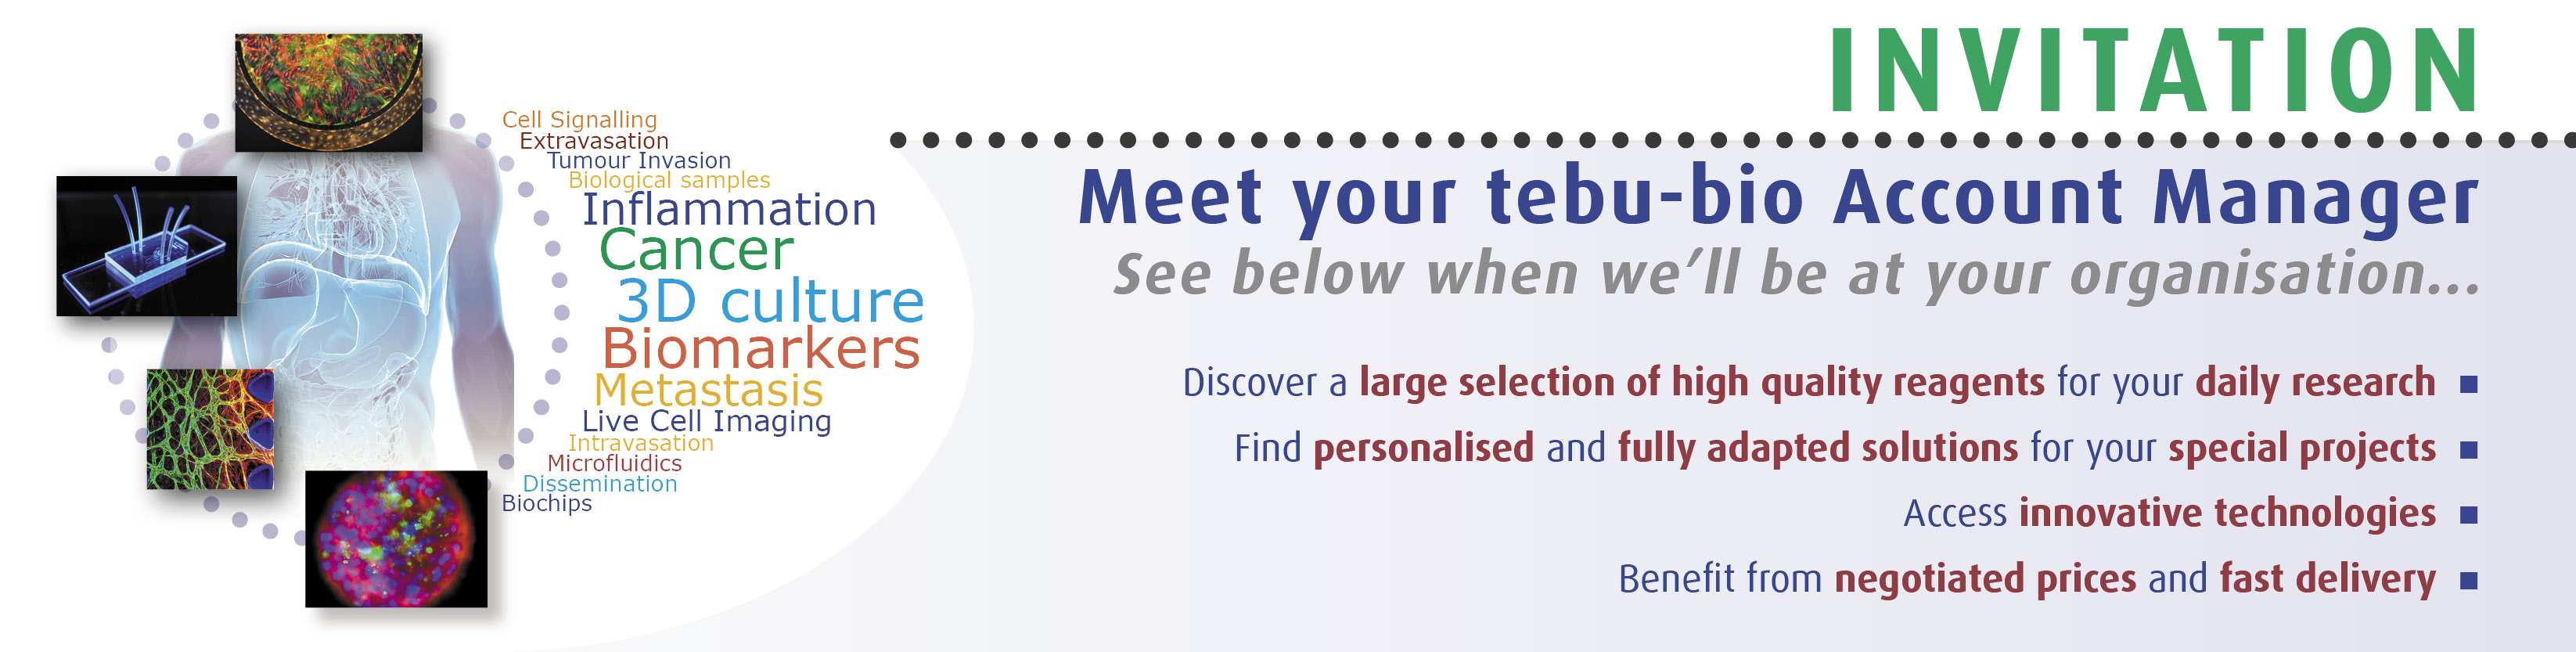 tebu-bio will be at Meet your tebu-bio Account Manager - Genethon, Evry